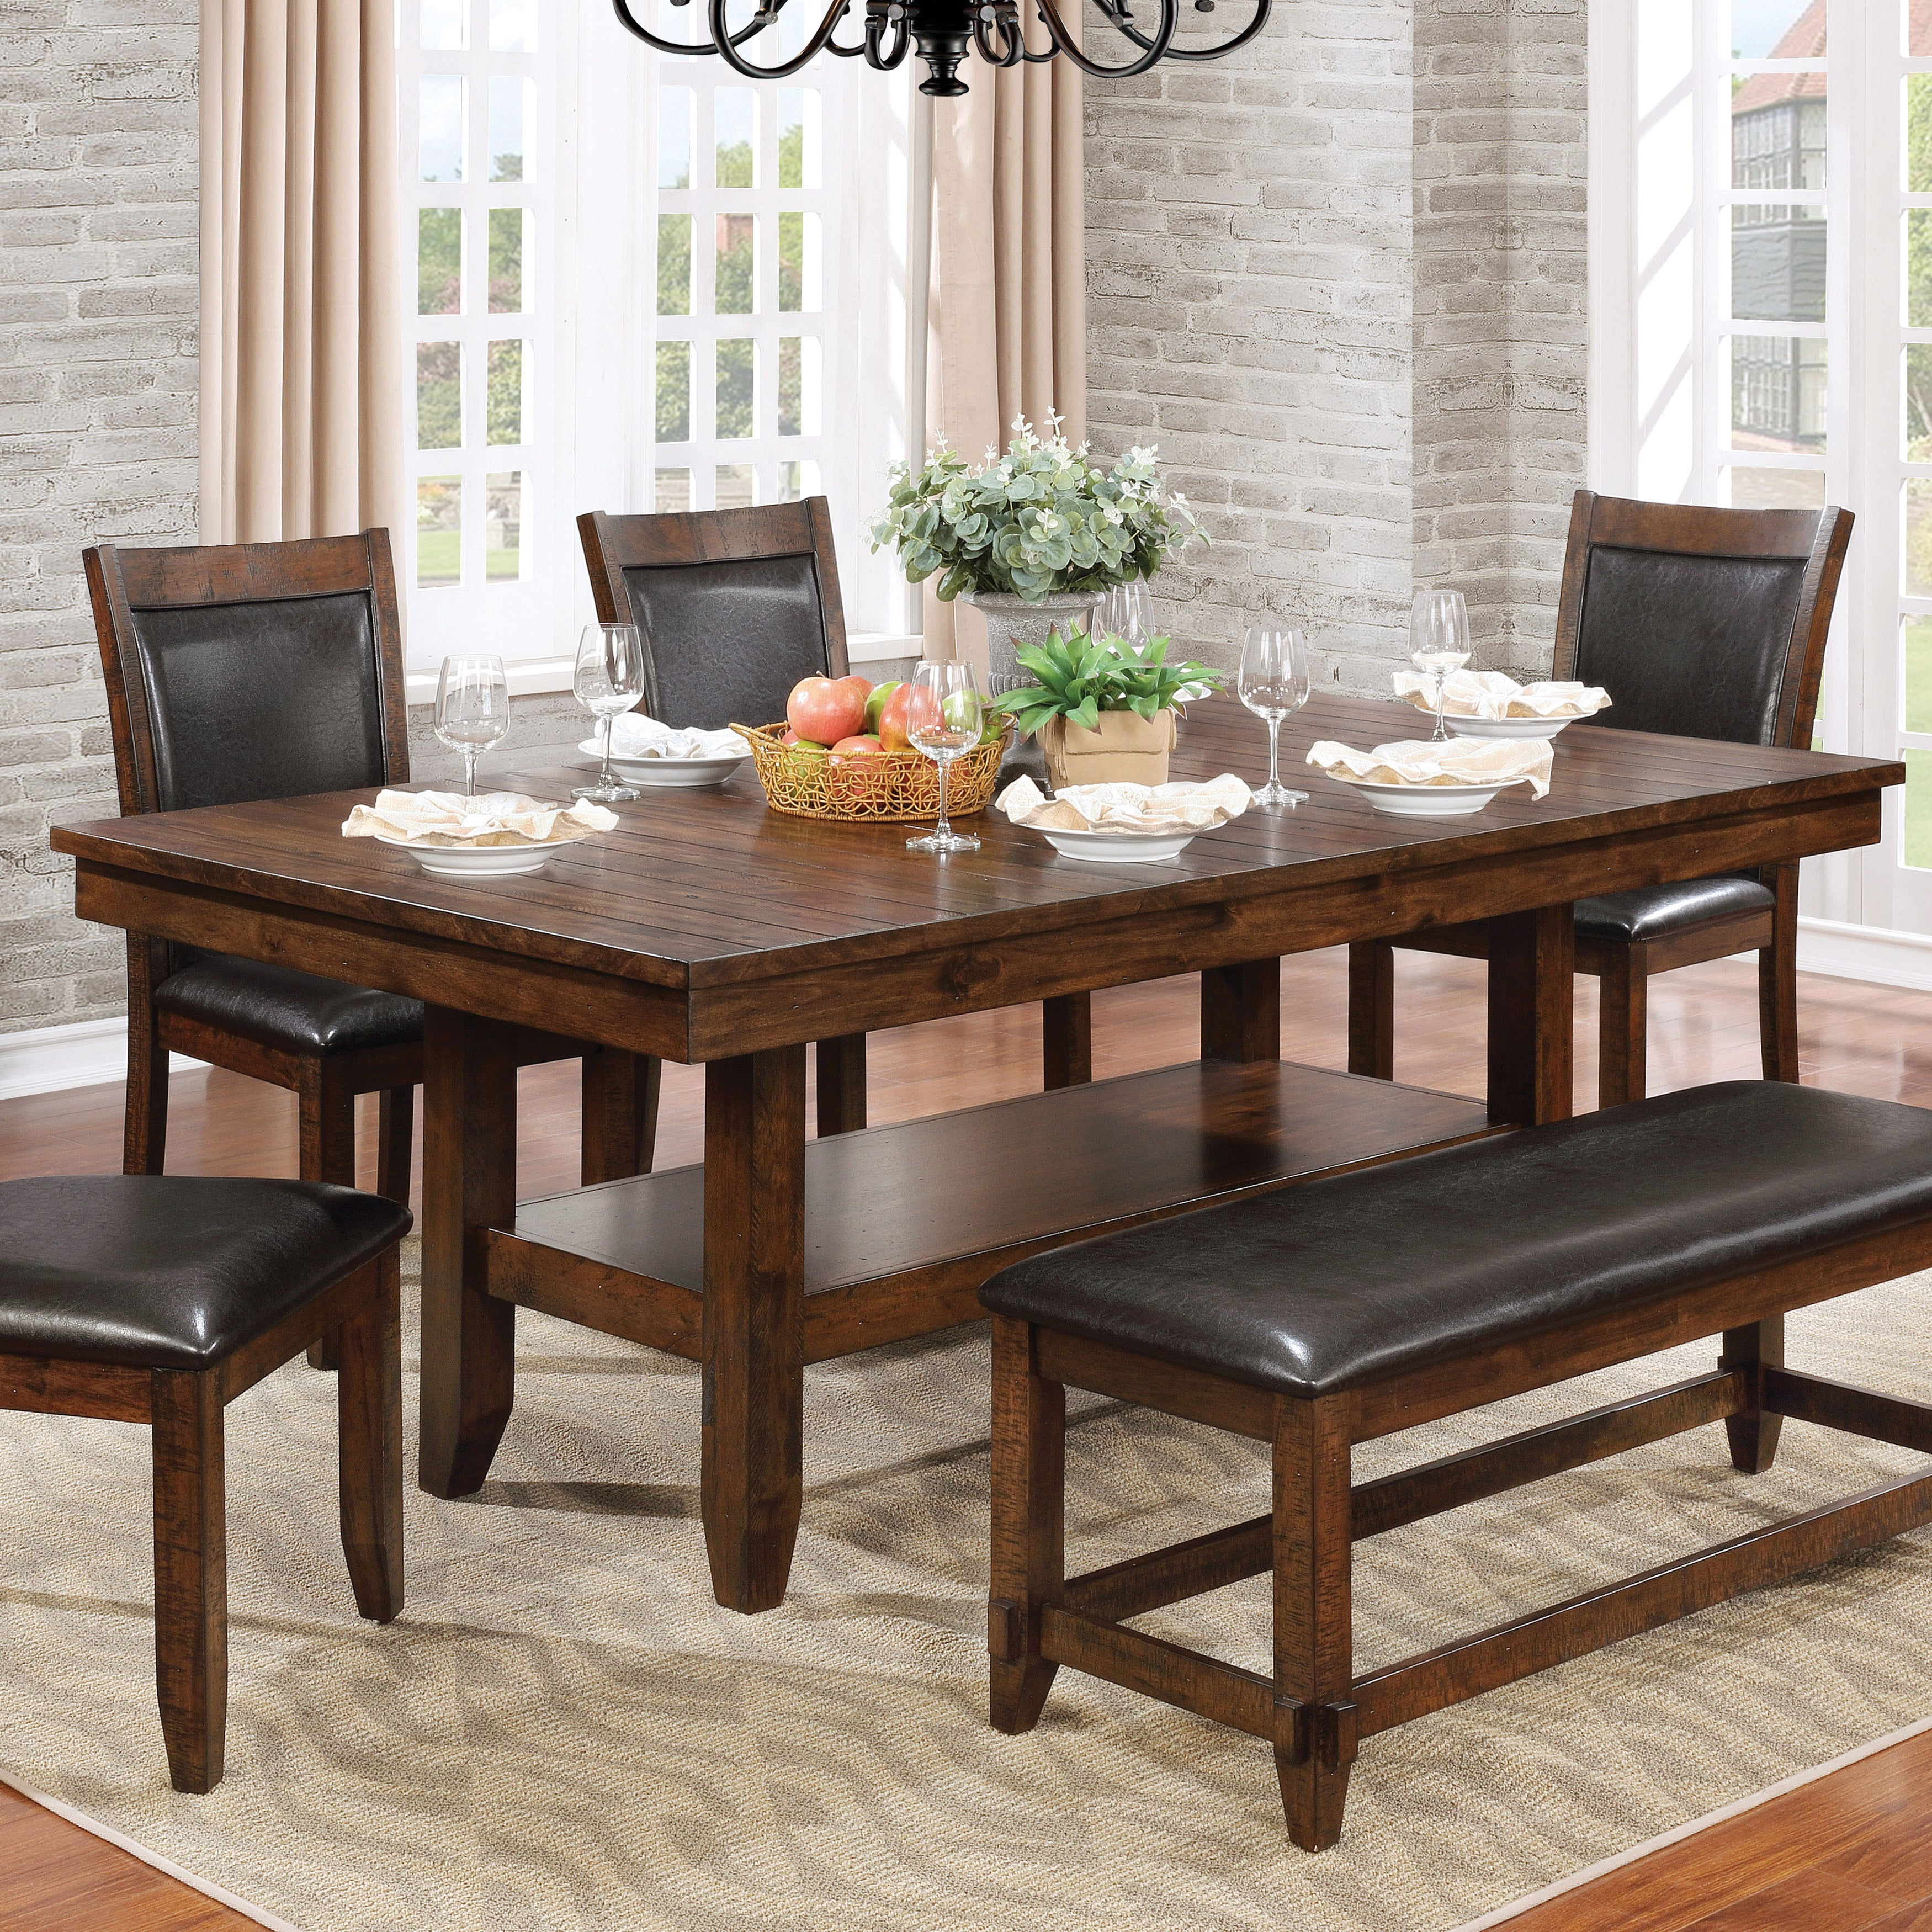 Miraculous Furniture Of America Grover Rustic Plank Style Brown Cherry 78 Inch Dining Table Cherry Brown Caraccident5 Cool Chair Designs And Ideas Caraccident5Info